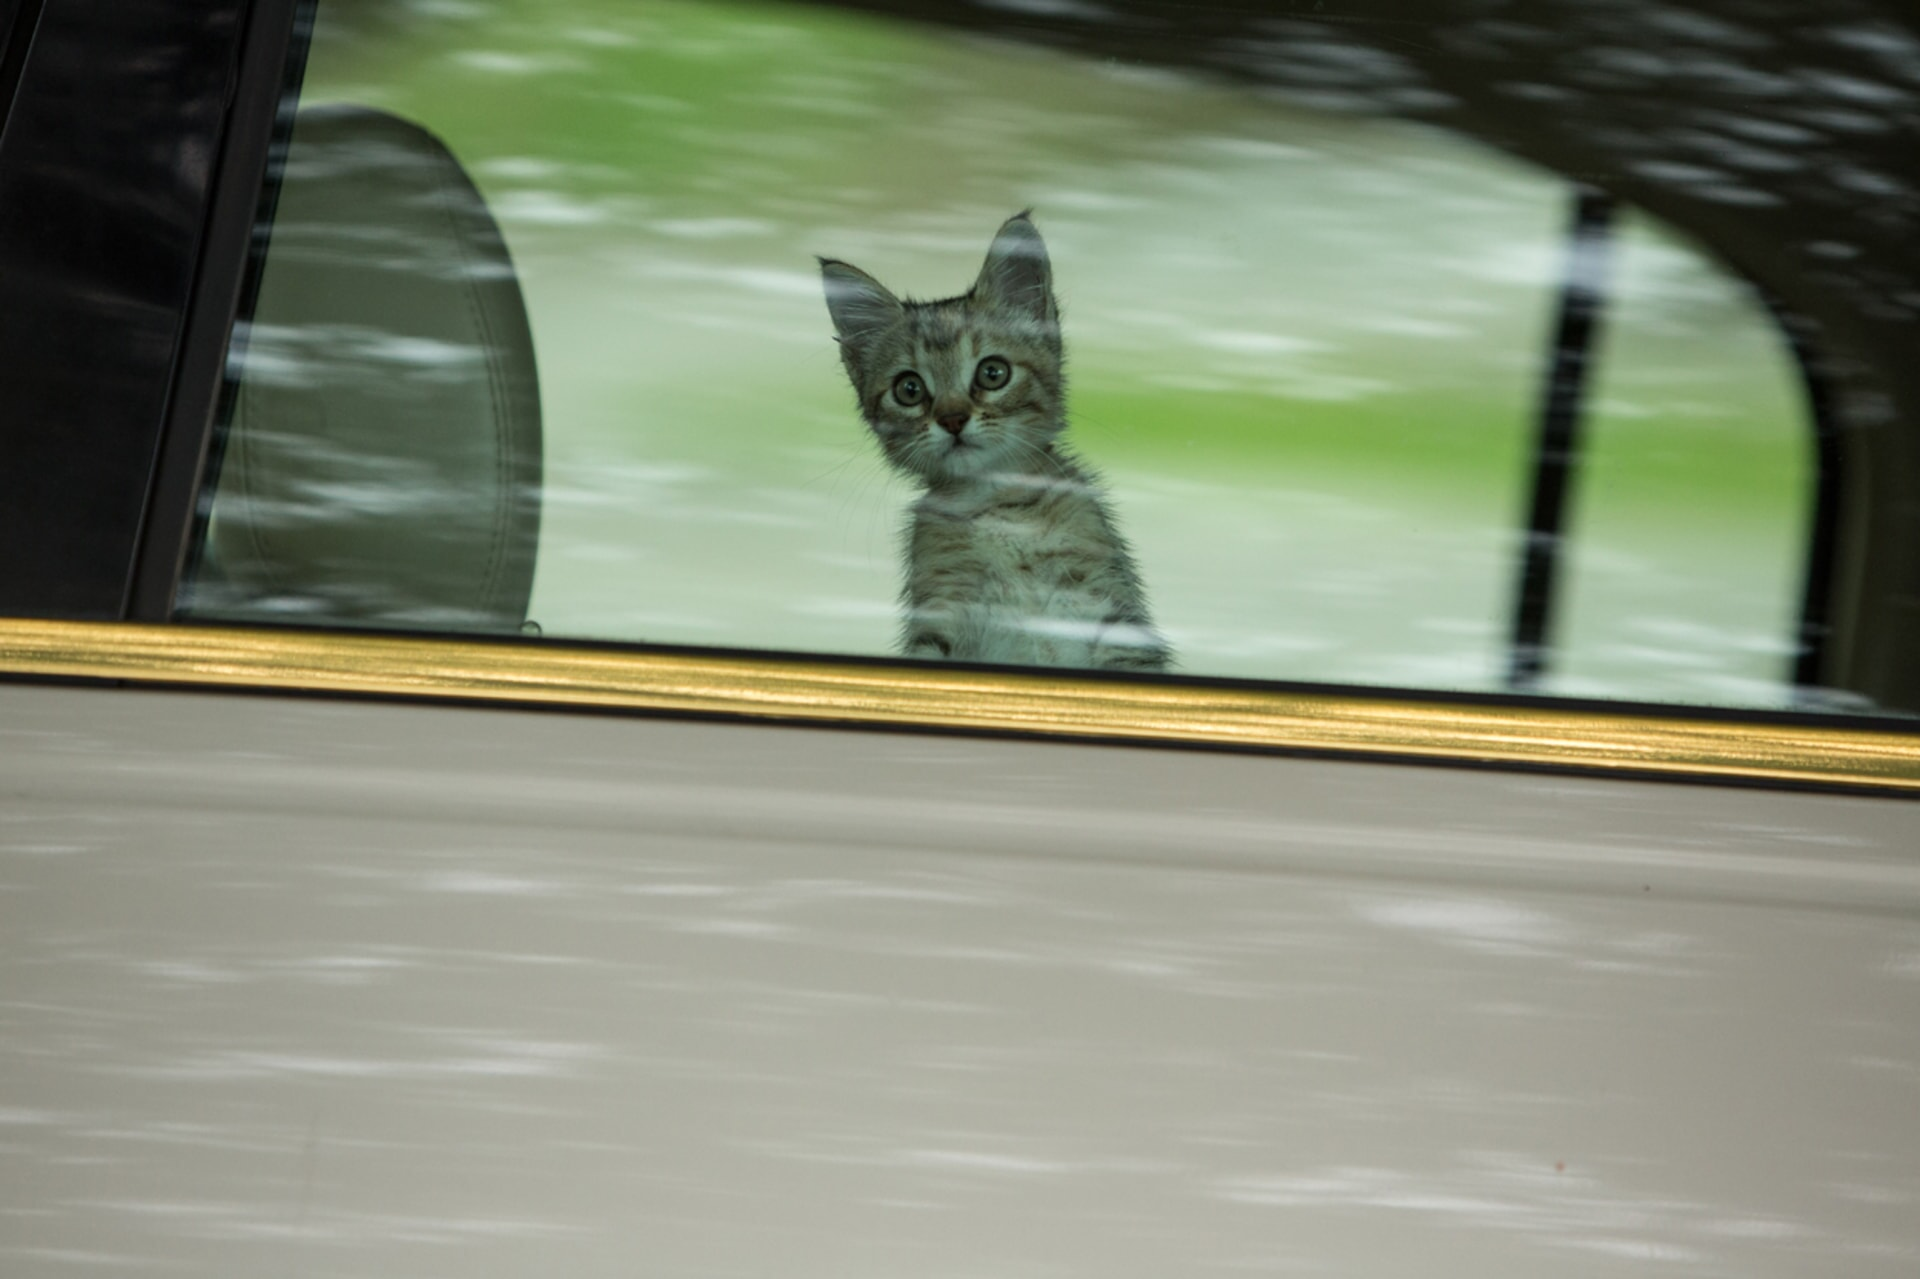 Keanu the kitten looking out a window from a moving vehicle